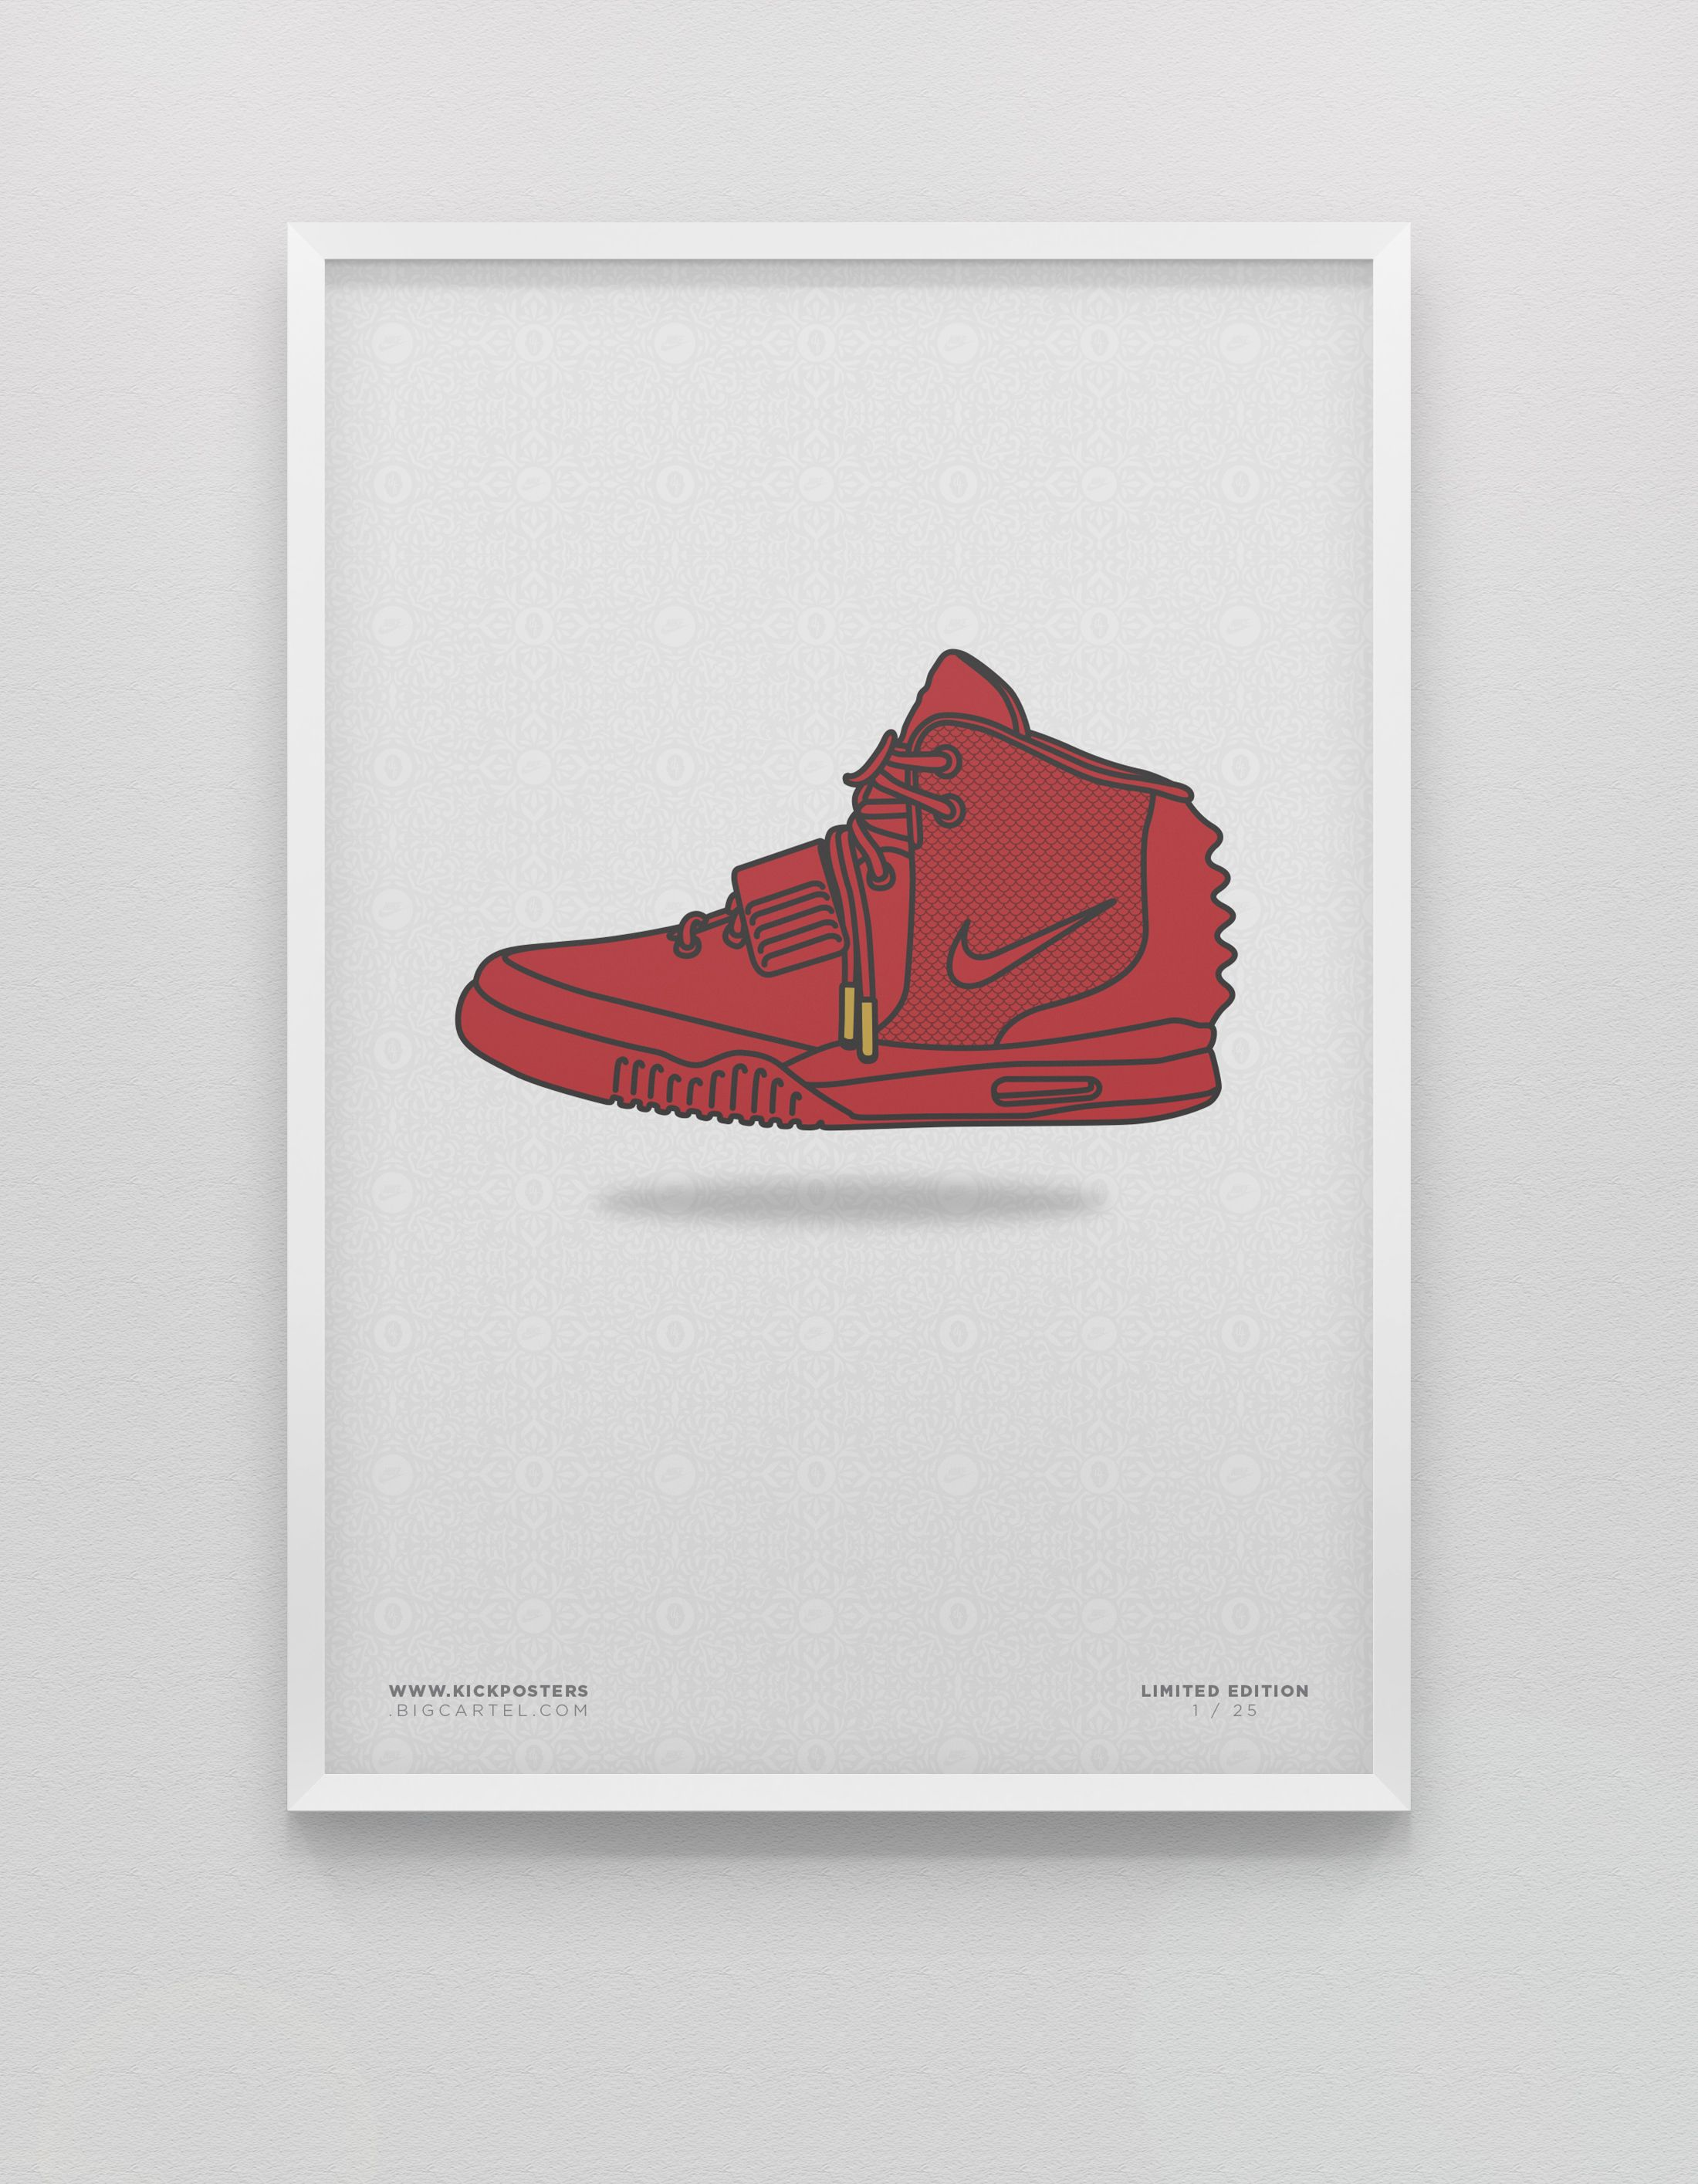 By Kick Posters (Basketball Fondos) | yeezy | Zapatos